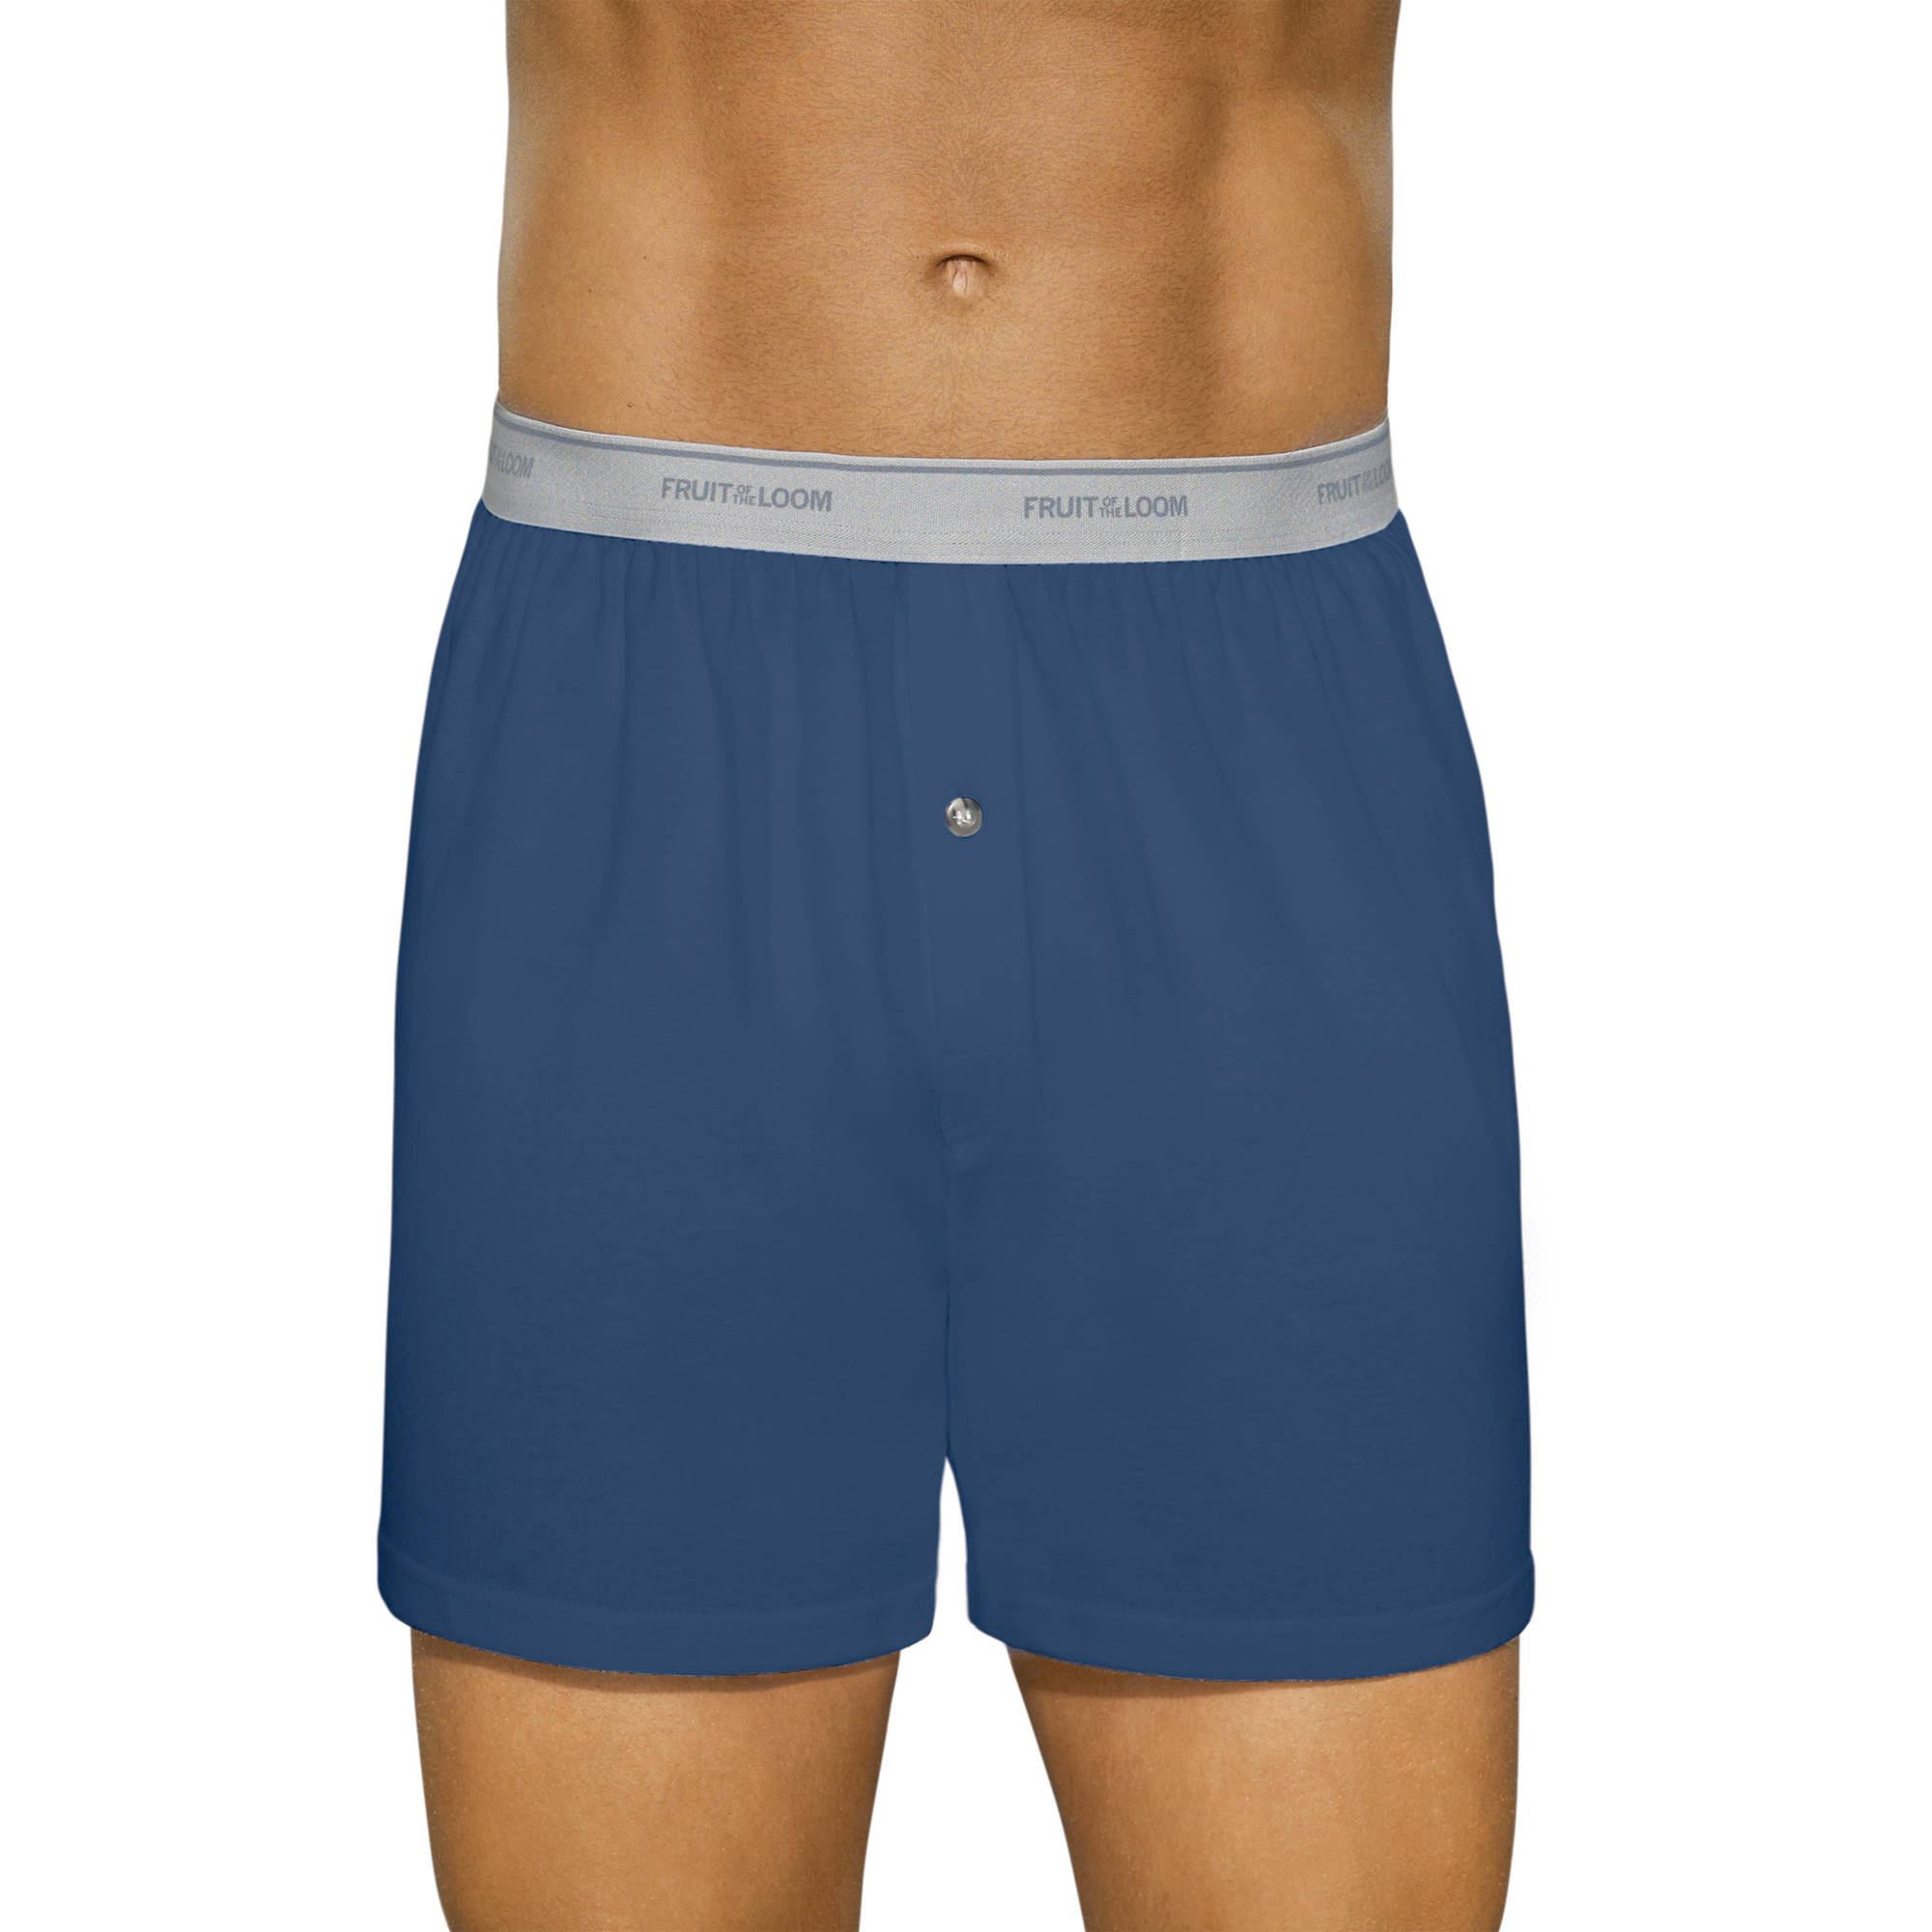 Fruit of the Loom Men's Soft Stretch Waistband Knit Boxers, 5-Pack